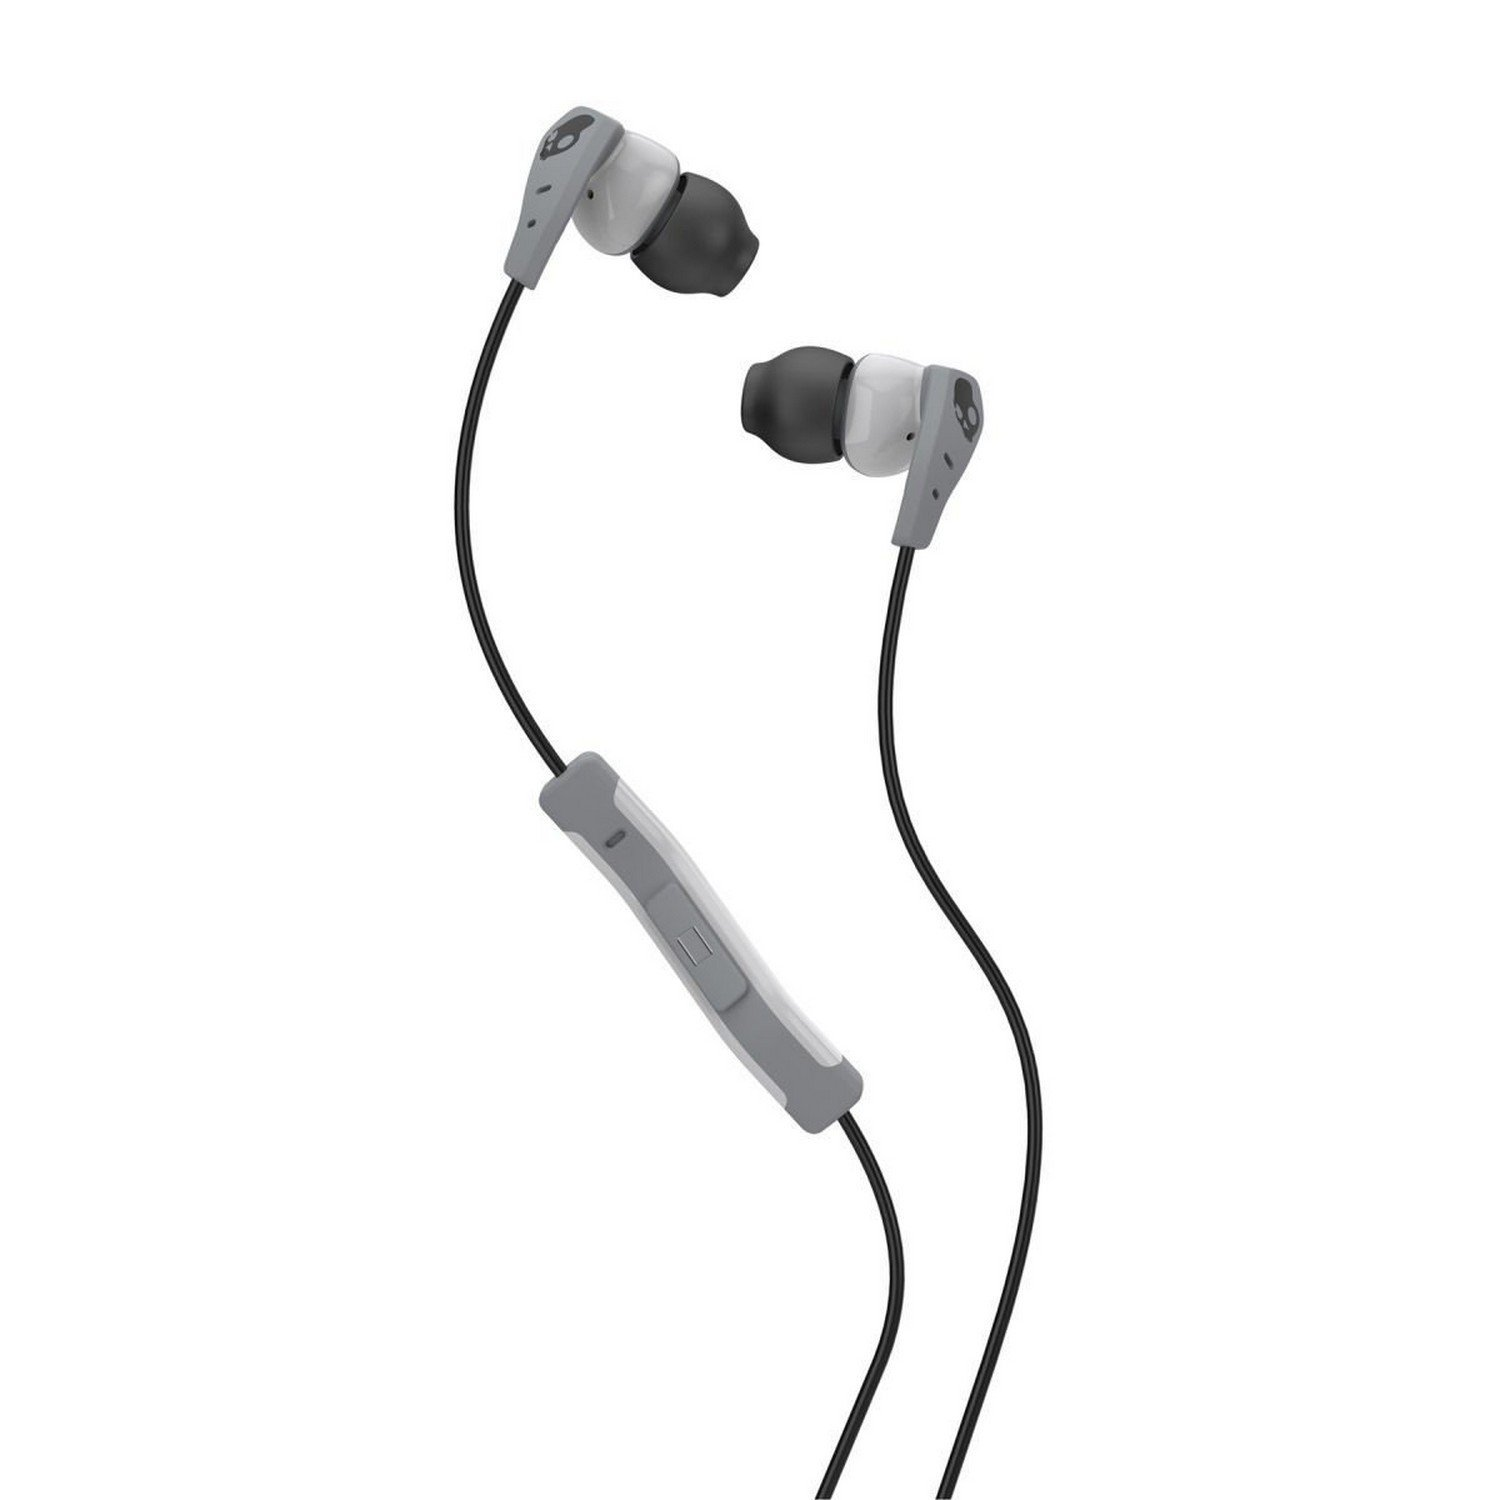 Skullcandy Method Sweat Resistant Sport Earbud with In-Line Microphone and Remote, Lightweight and Secure In-Ear Fit for Running and Exercise, Cable Management Clip for Workouts, Gray